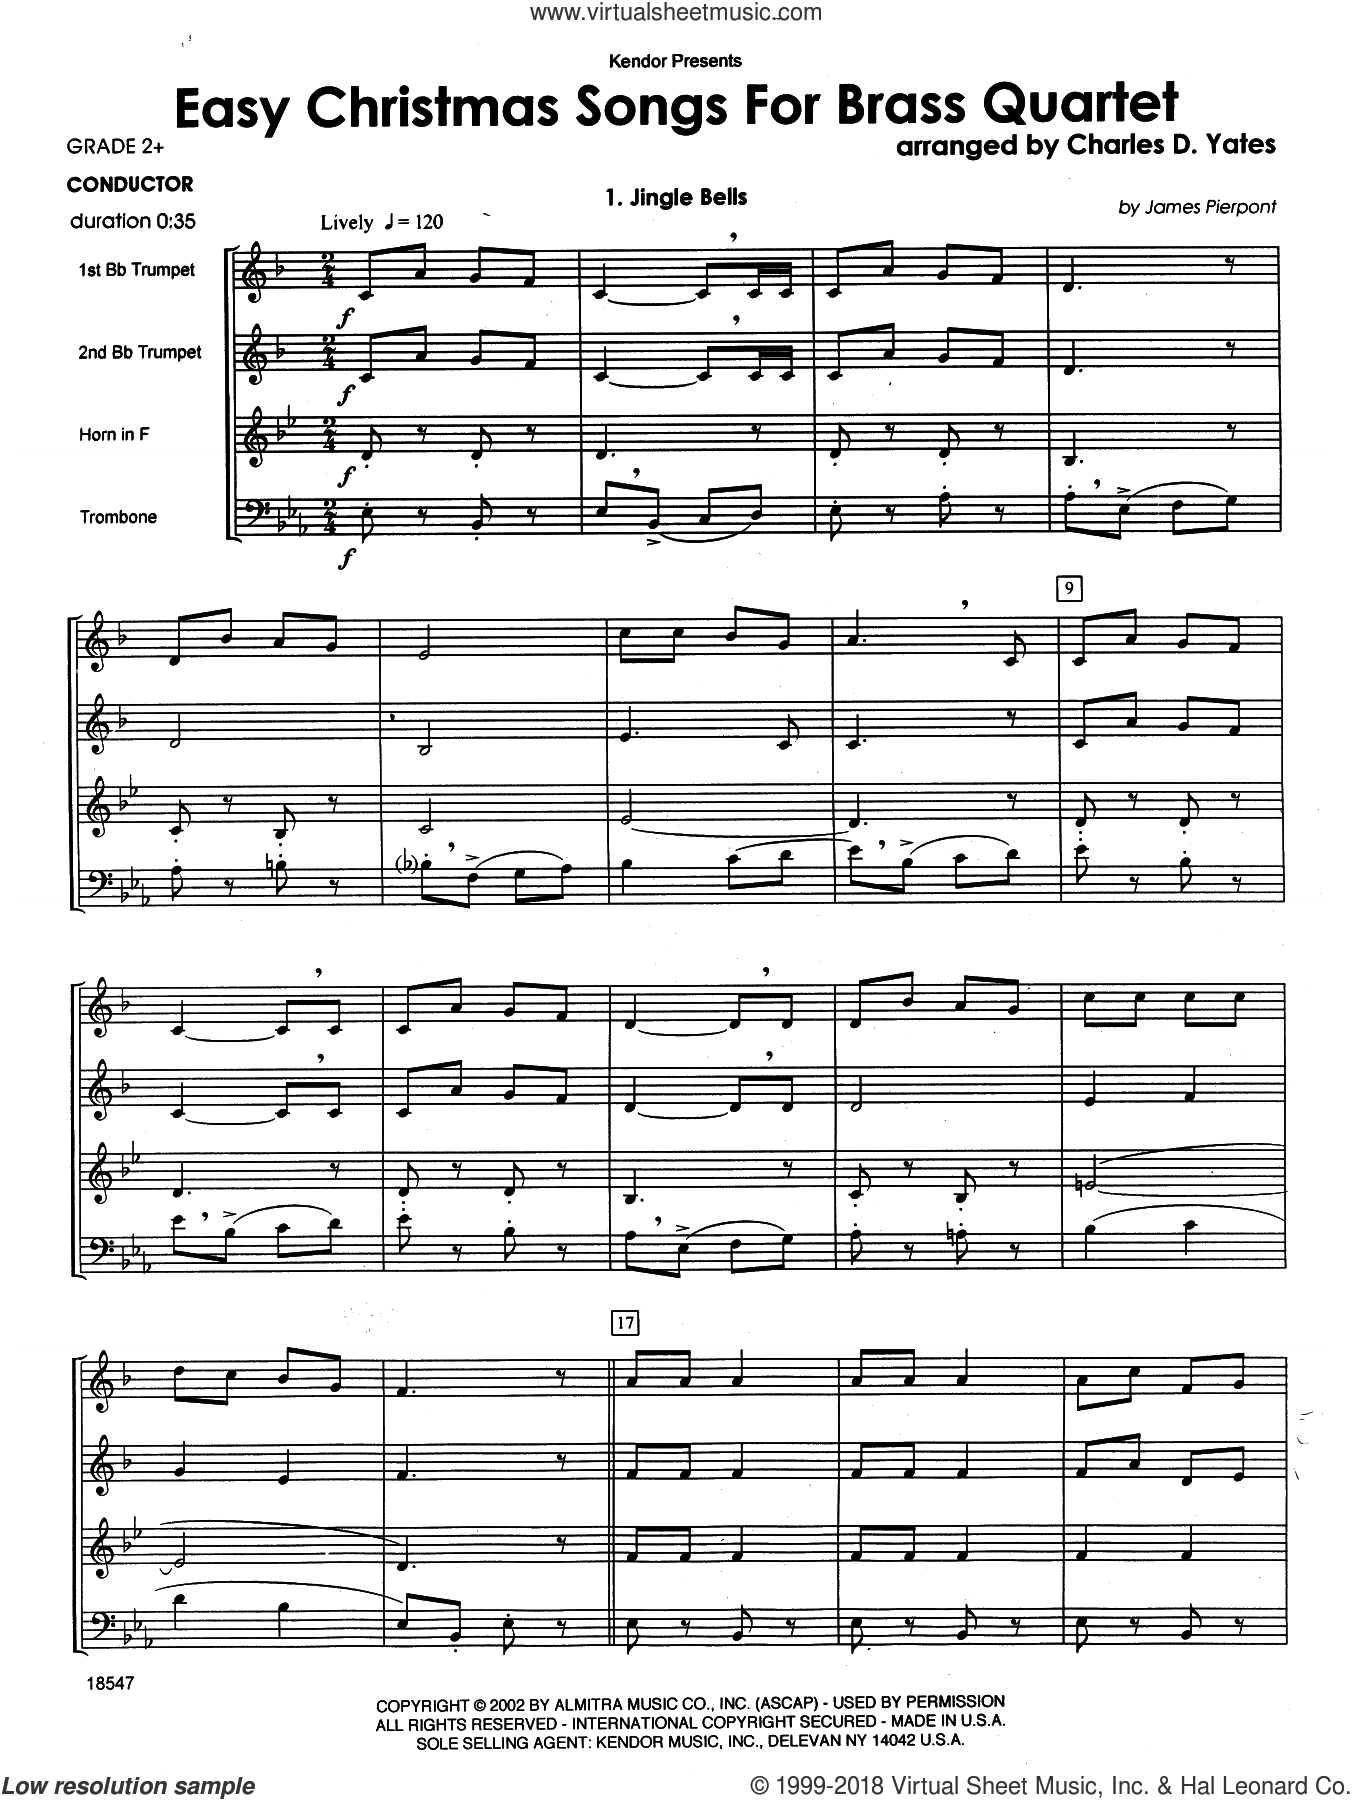 Easy Christmas Songs For Brass Quartet (COMPLETE) sheet music for brass quartet by Charles D. Yates, intermediate skill level